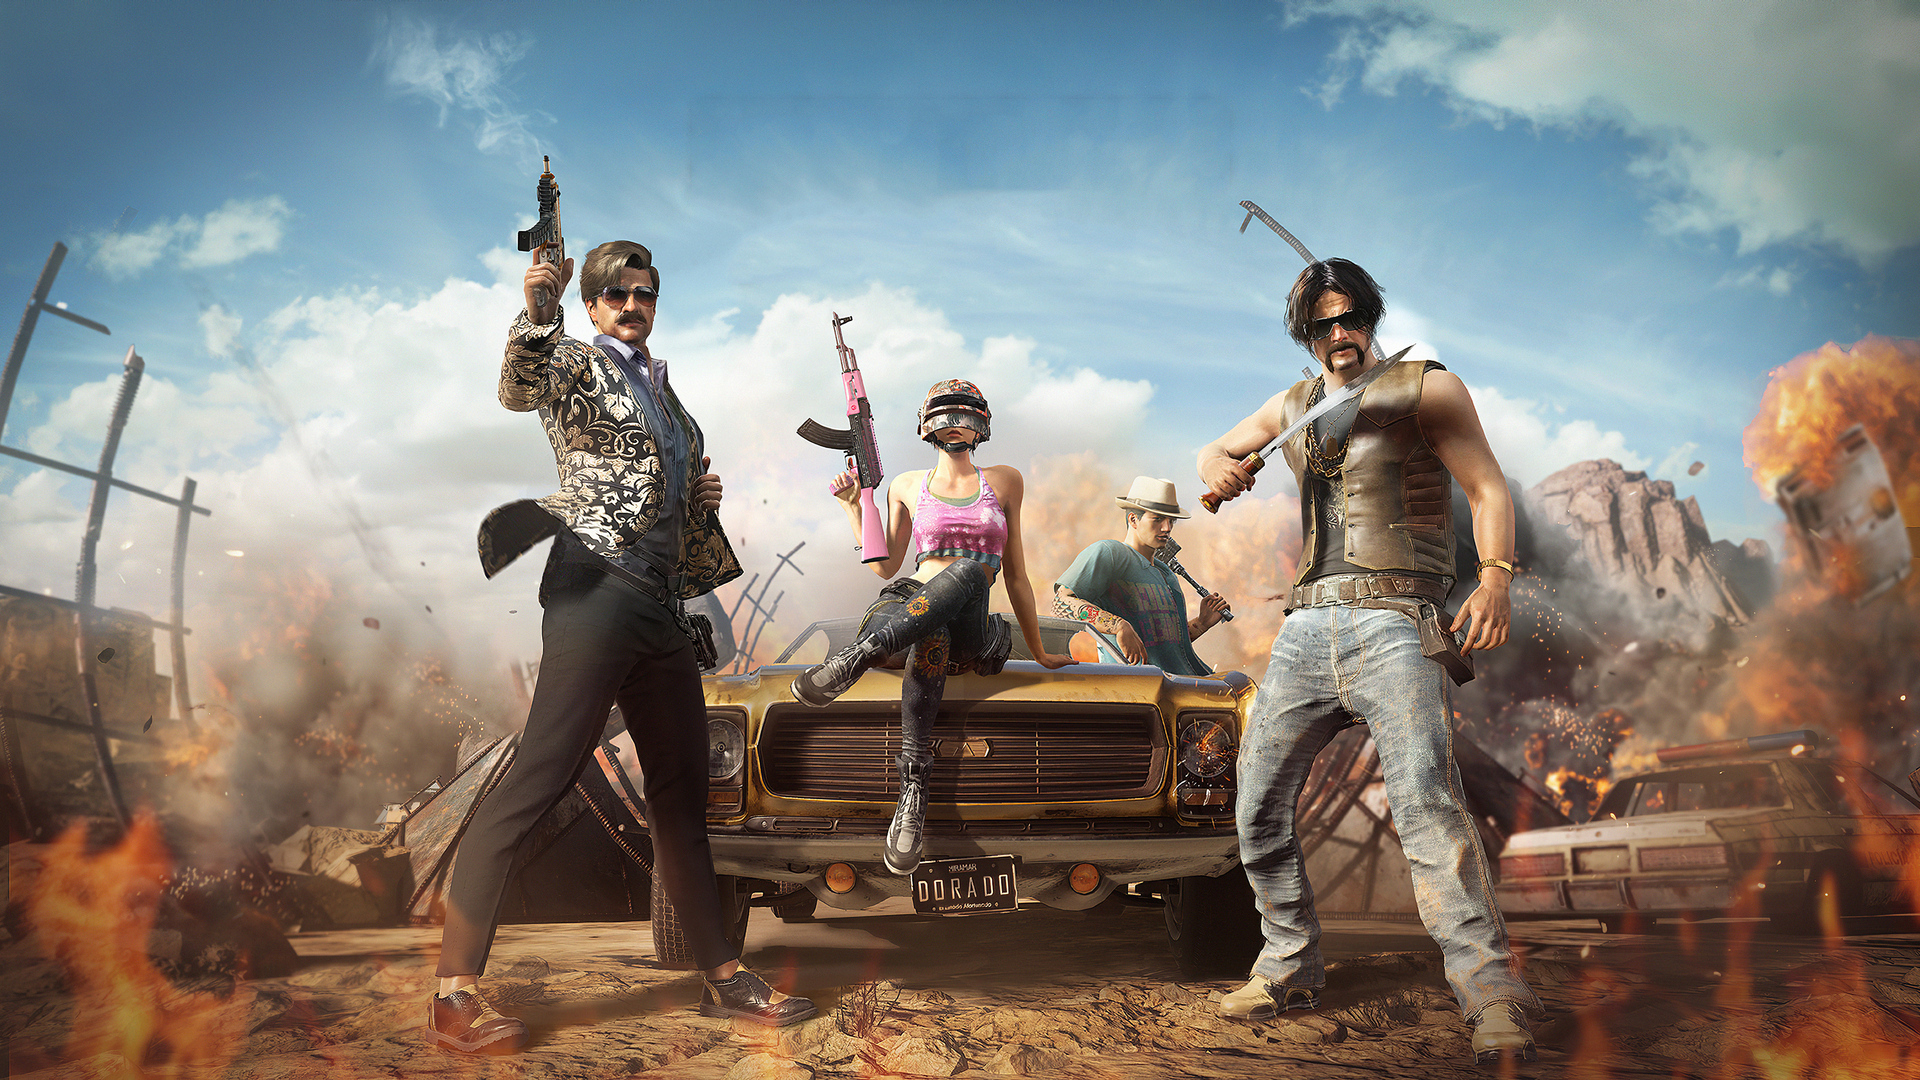 1920x1080 Pubg Warrior 4k Laptop Full Hd 1080p Hd 4k Wallpapers Images Backgrounds Photos And Pictures